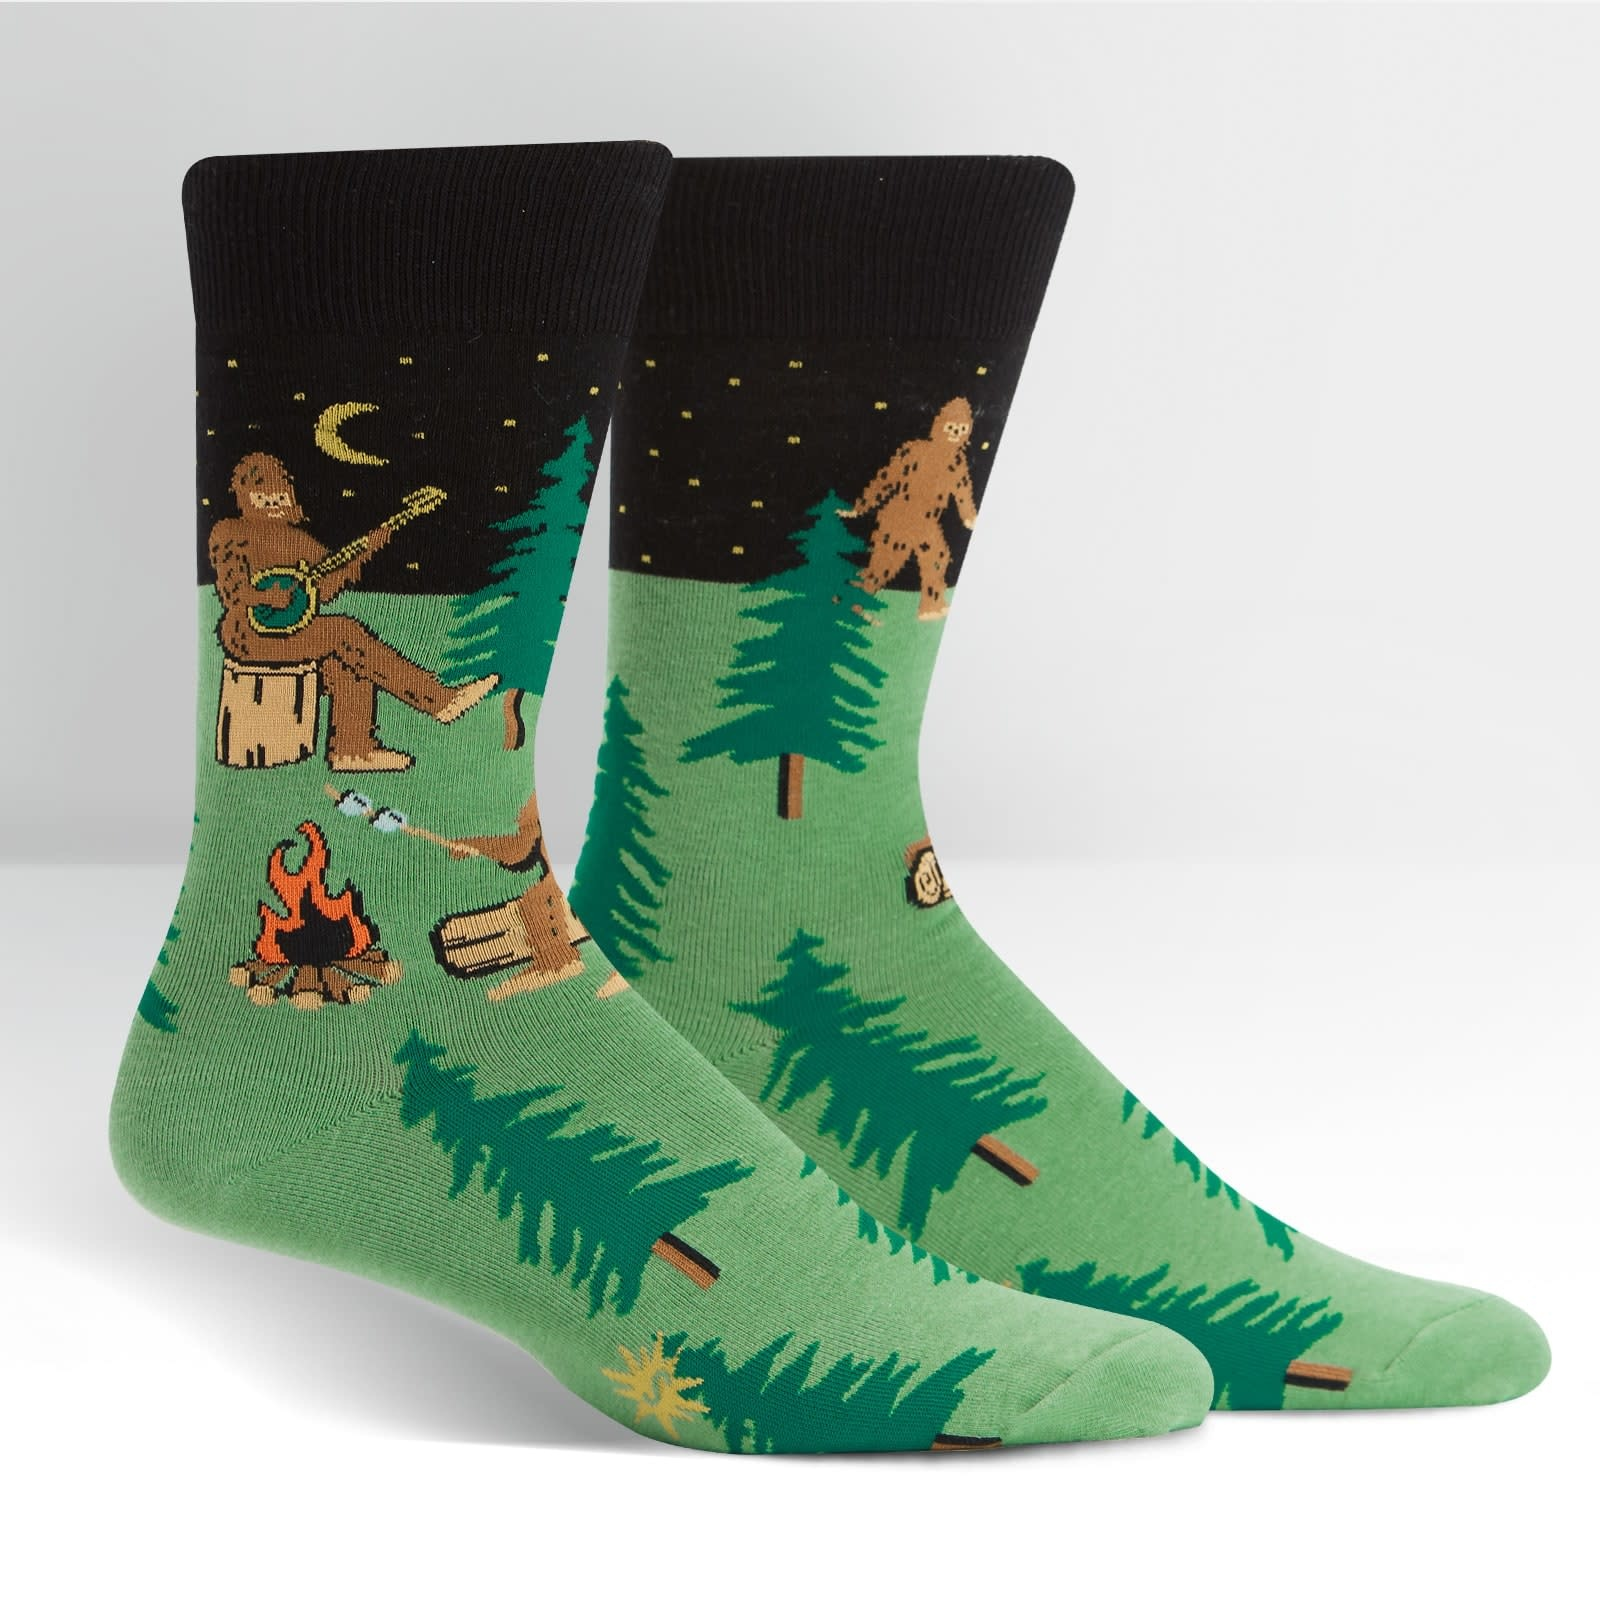 Sasquatch Camp Out Crew Socks